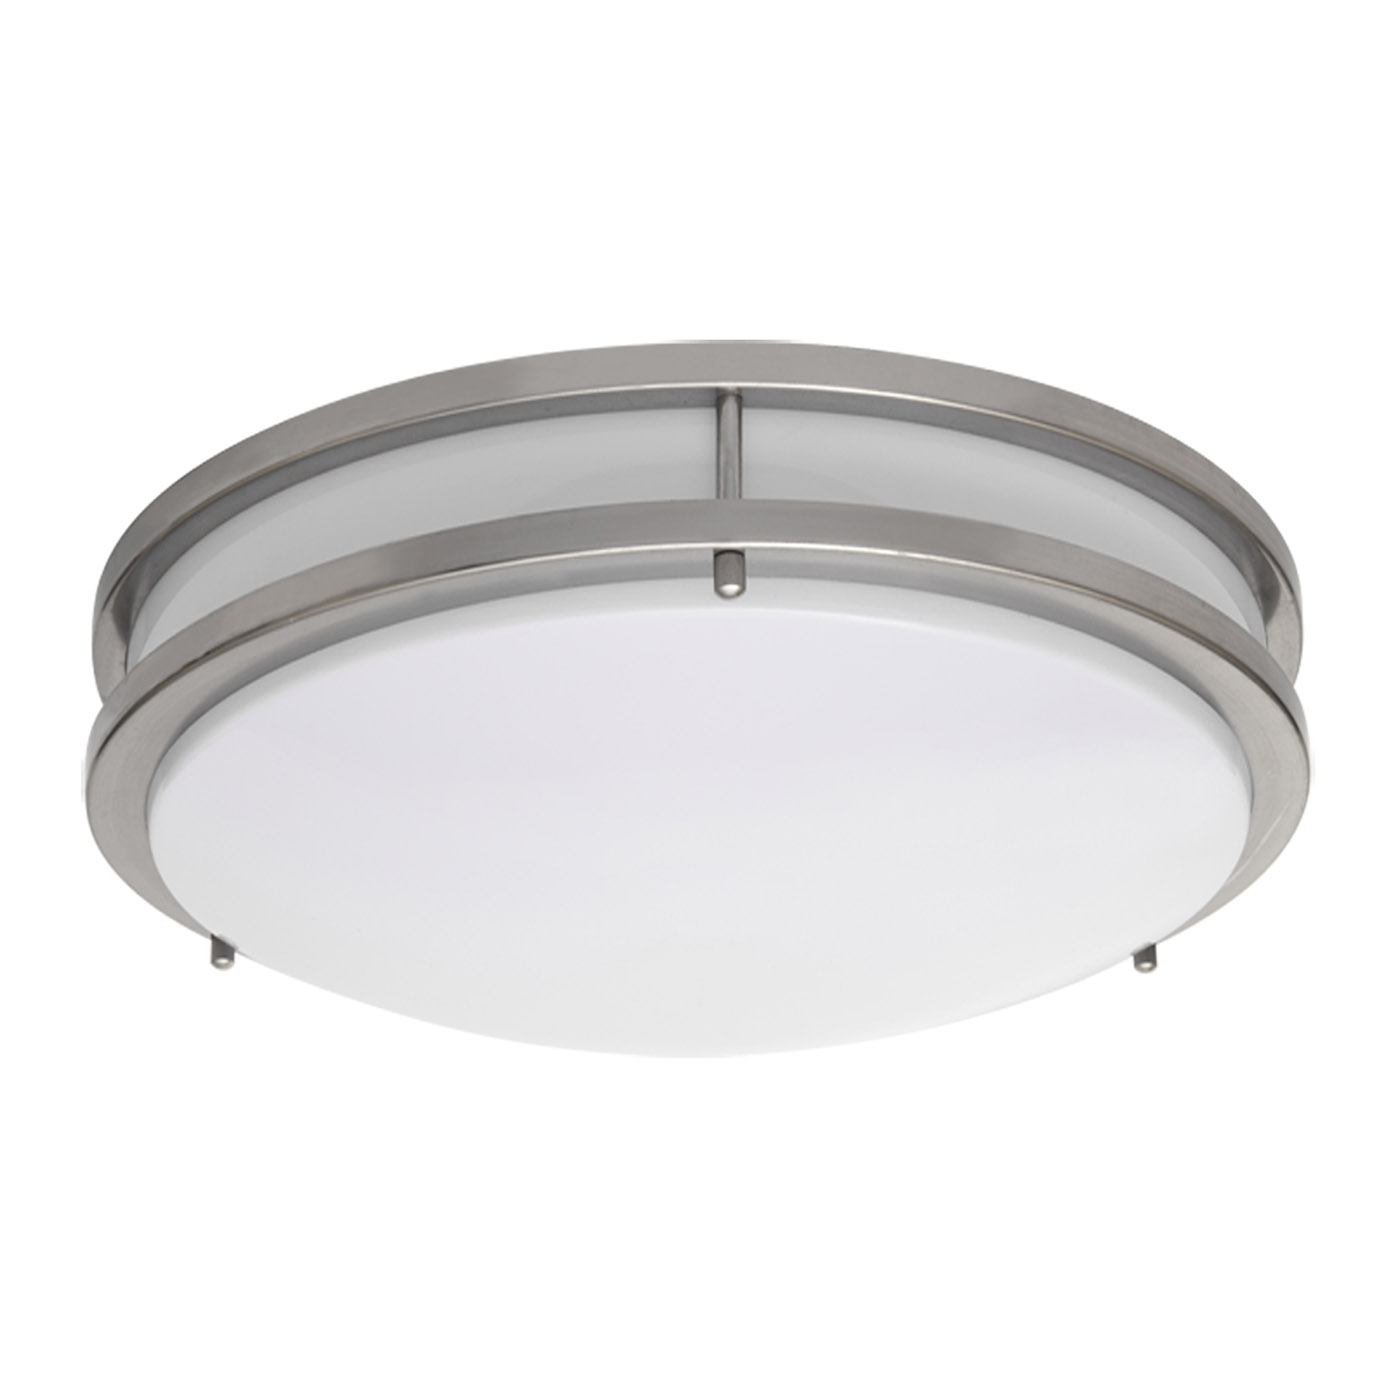 Give Your Ceiling a Glow with the Small Led Ceiling Lights